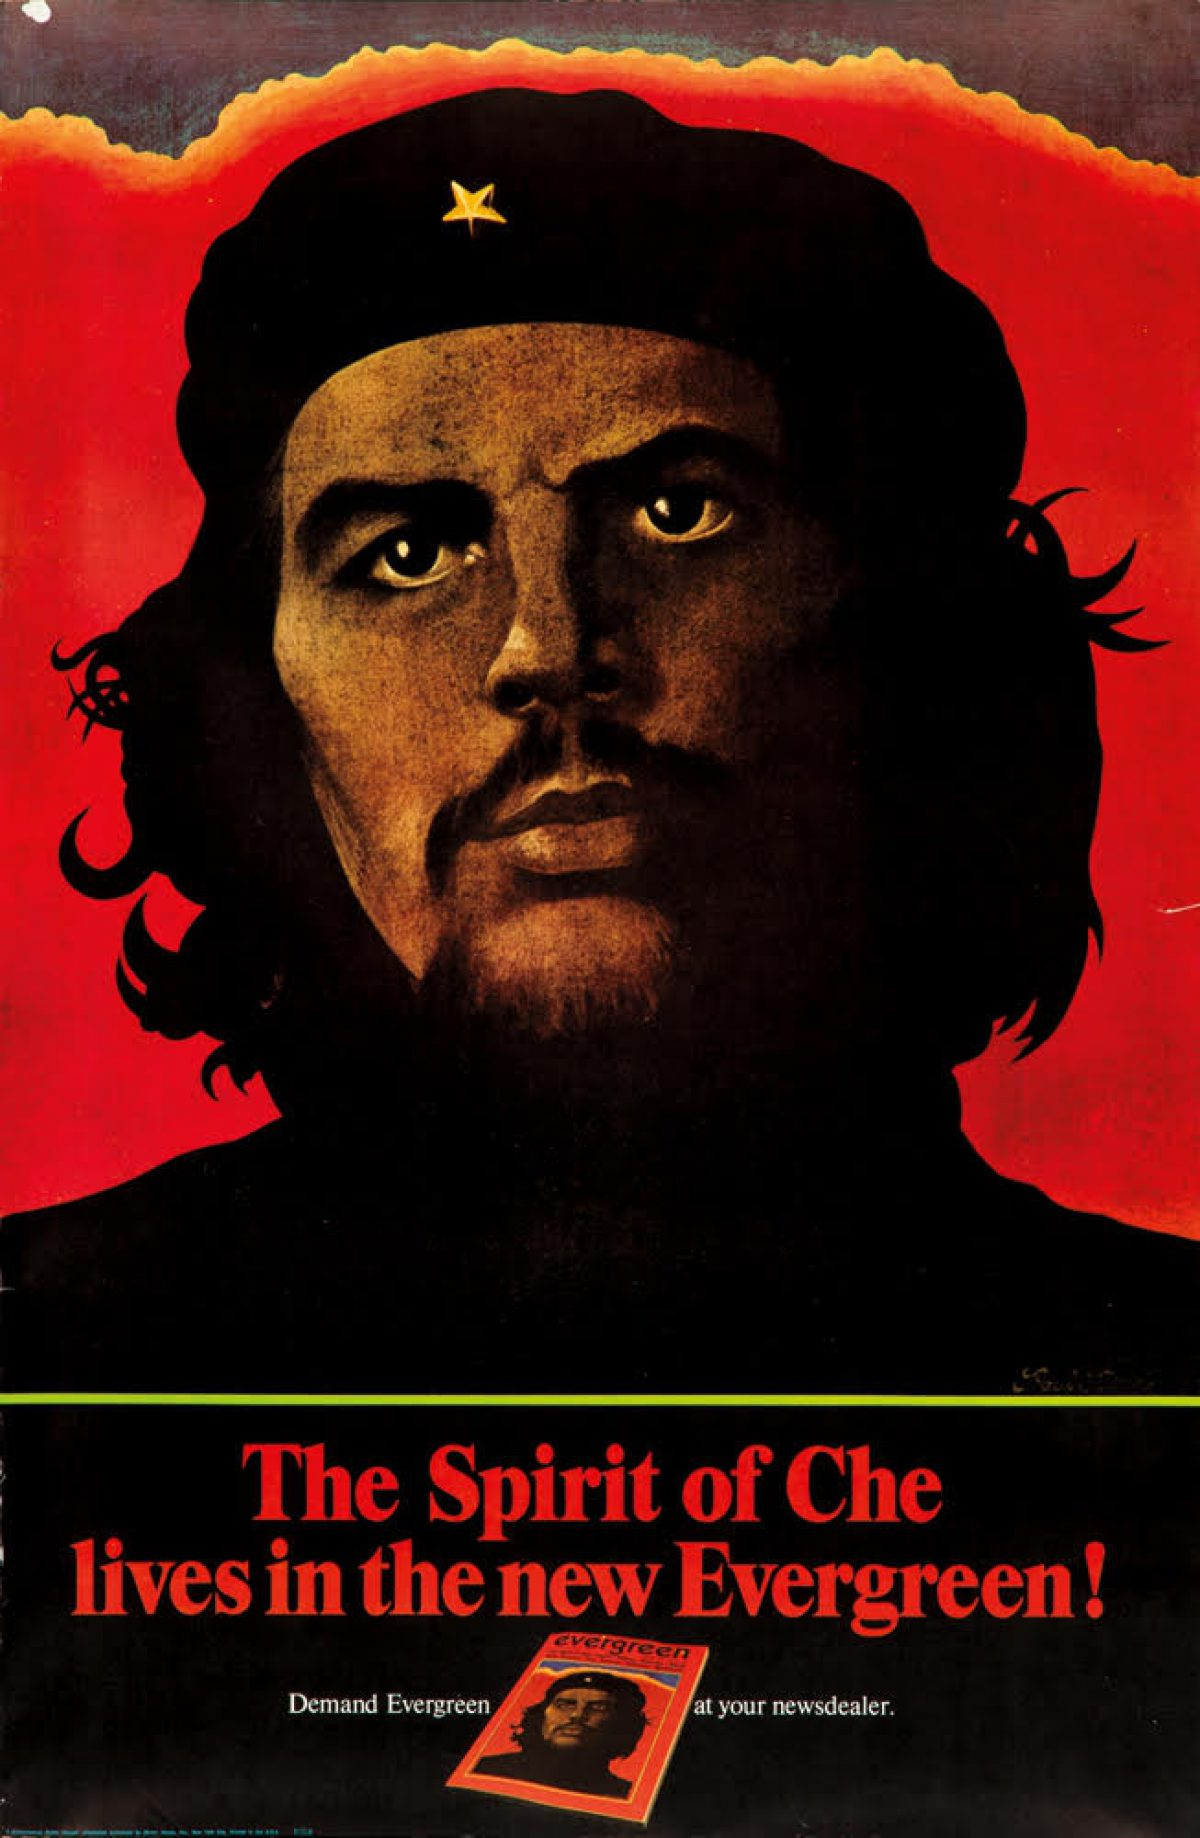 illustrational poster of Che Guevara looking off into the distance